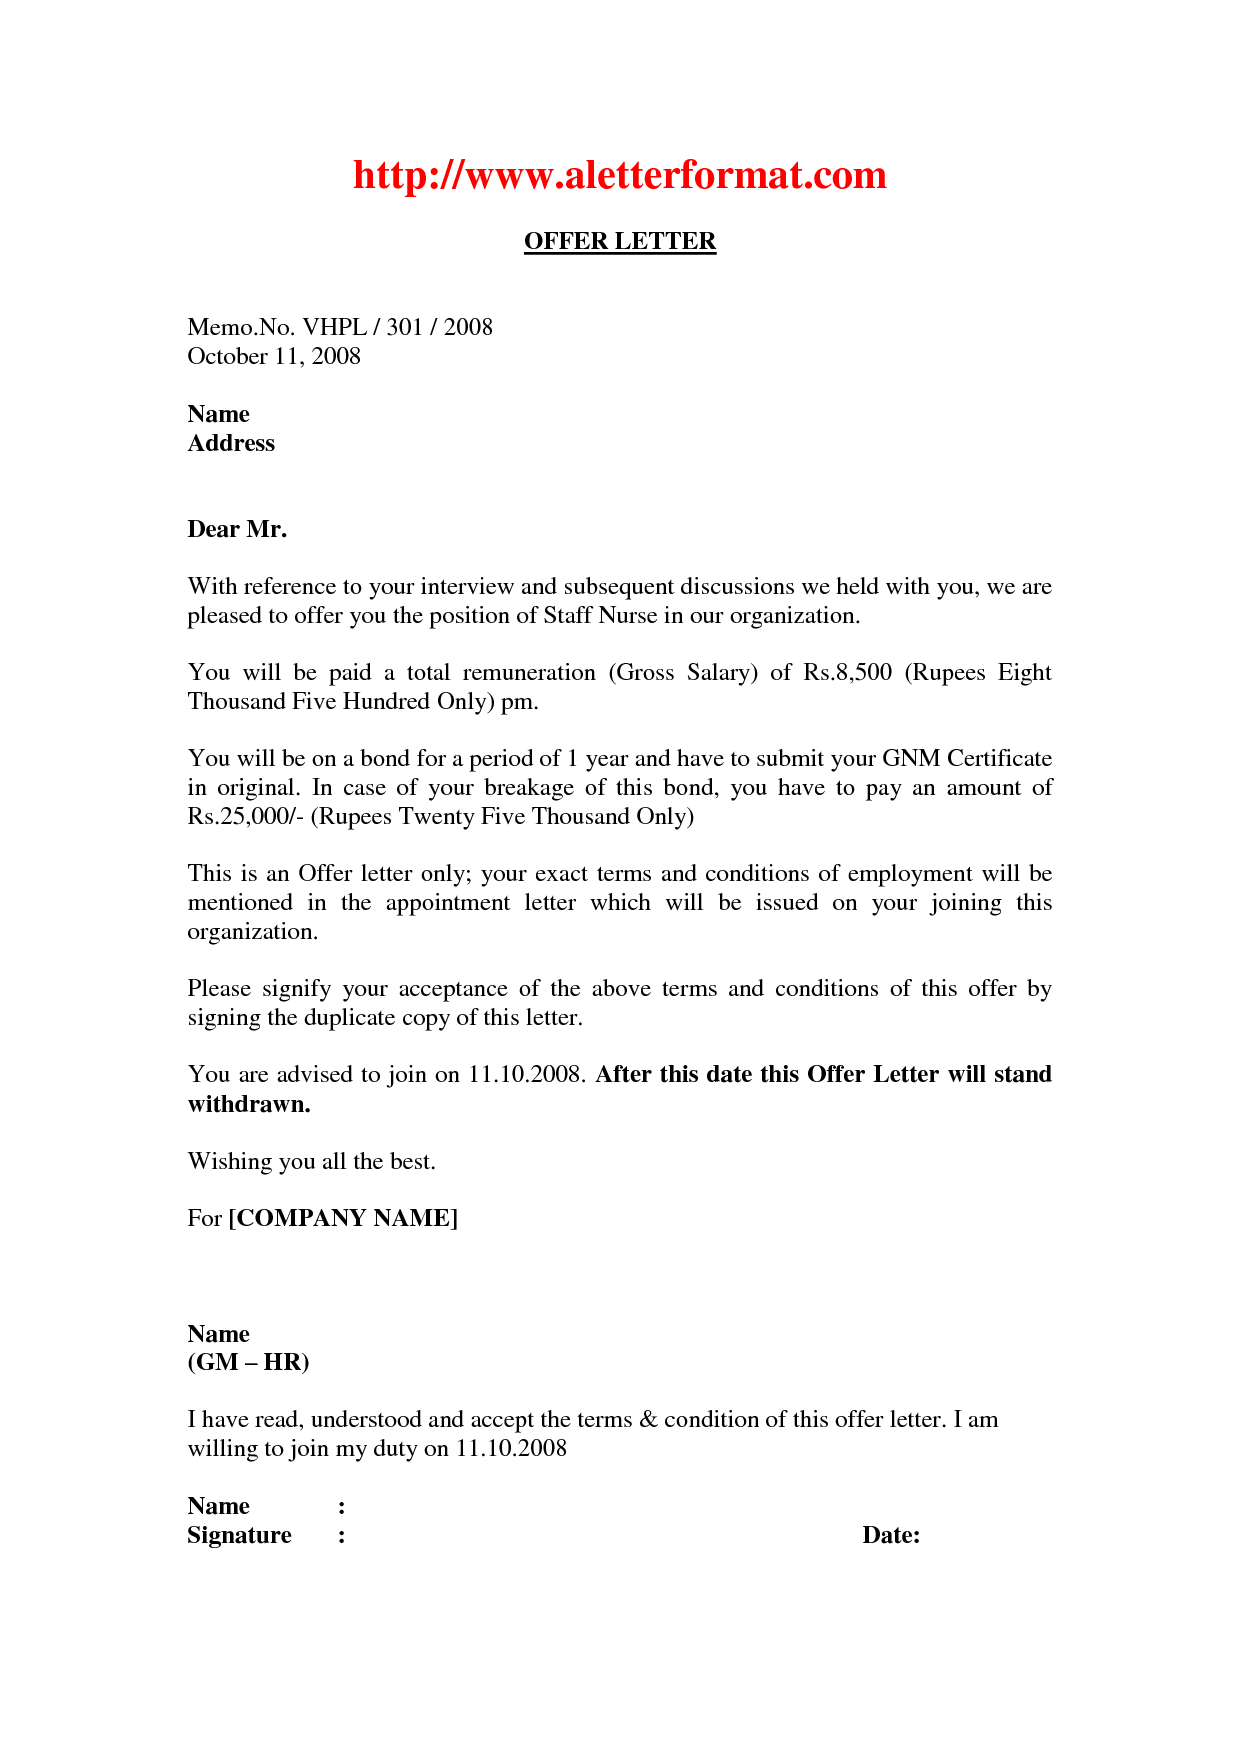 Job offer agreement employment contract letter sample - Interior design letter of agreement ...